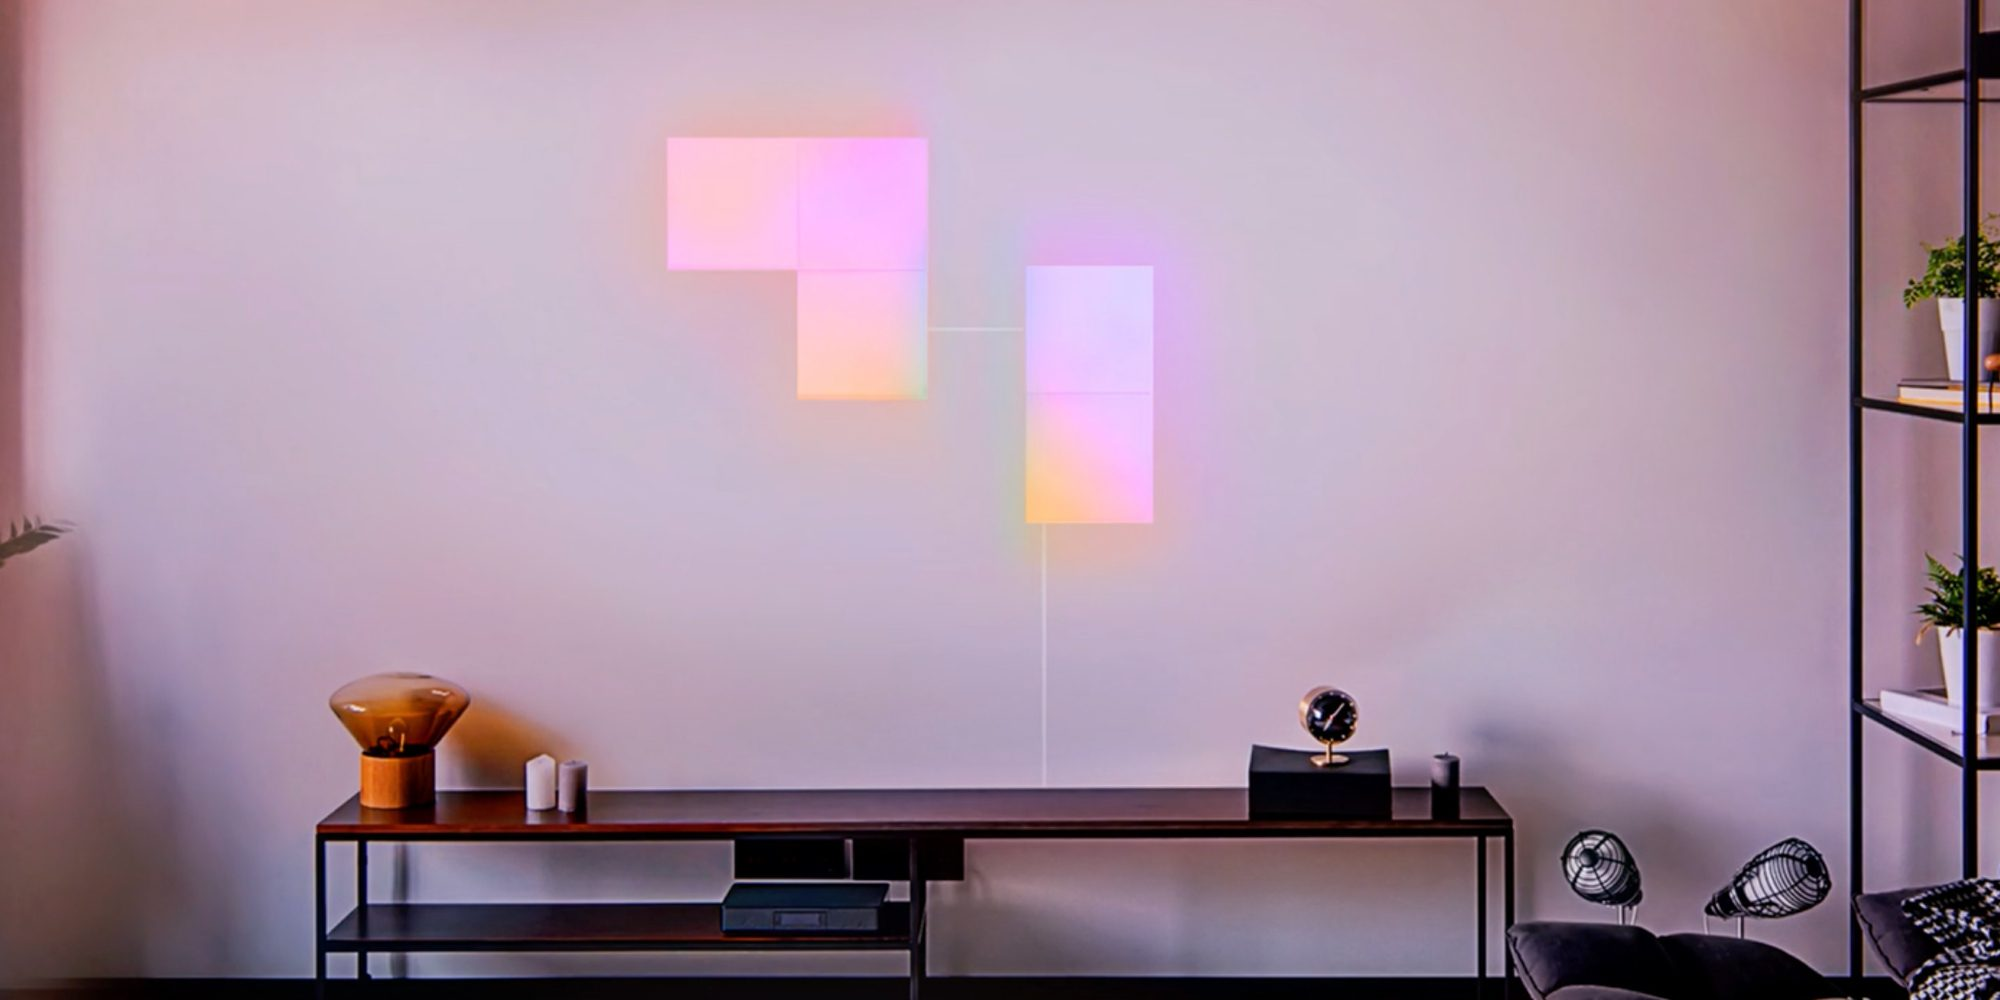 Lifx Unveils New Modular Led Lighting Panel System With